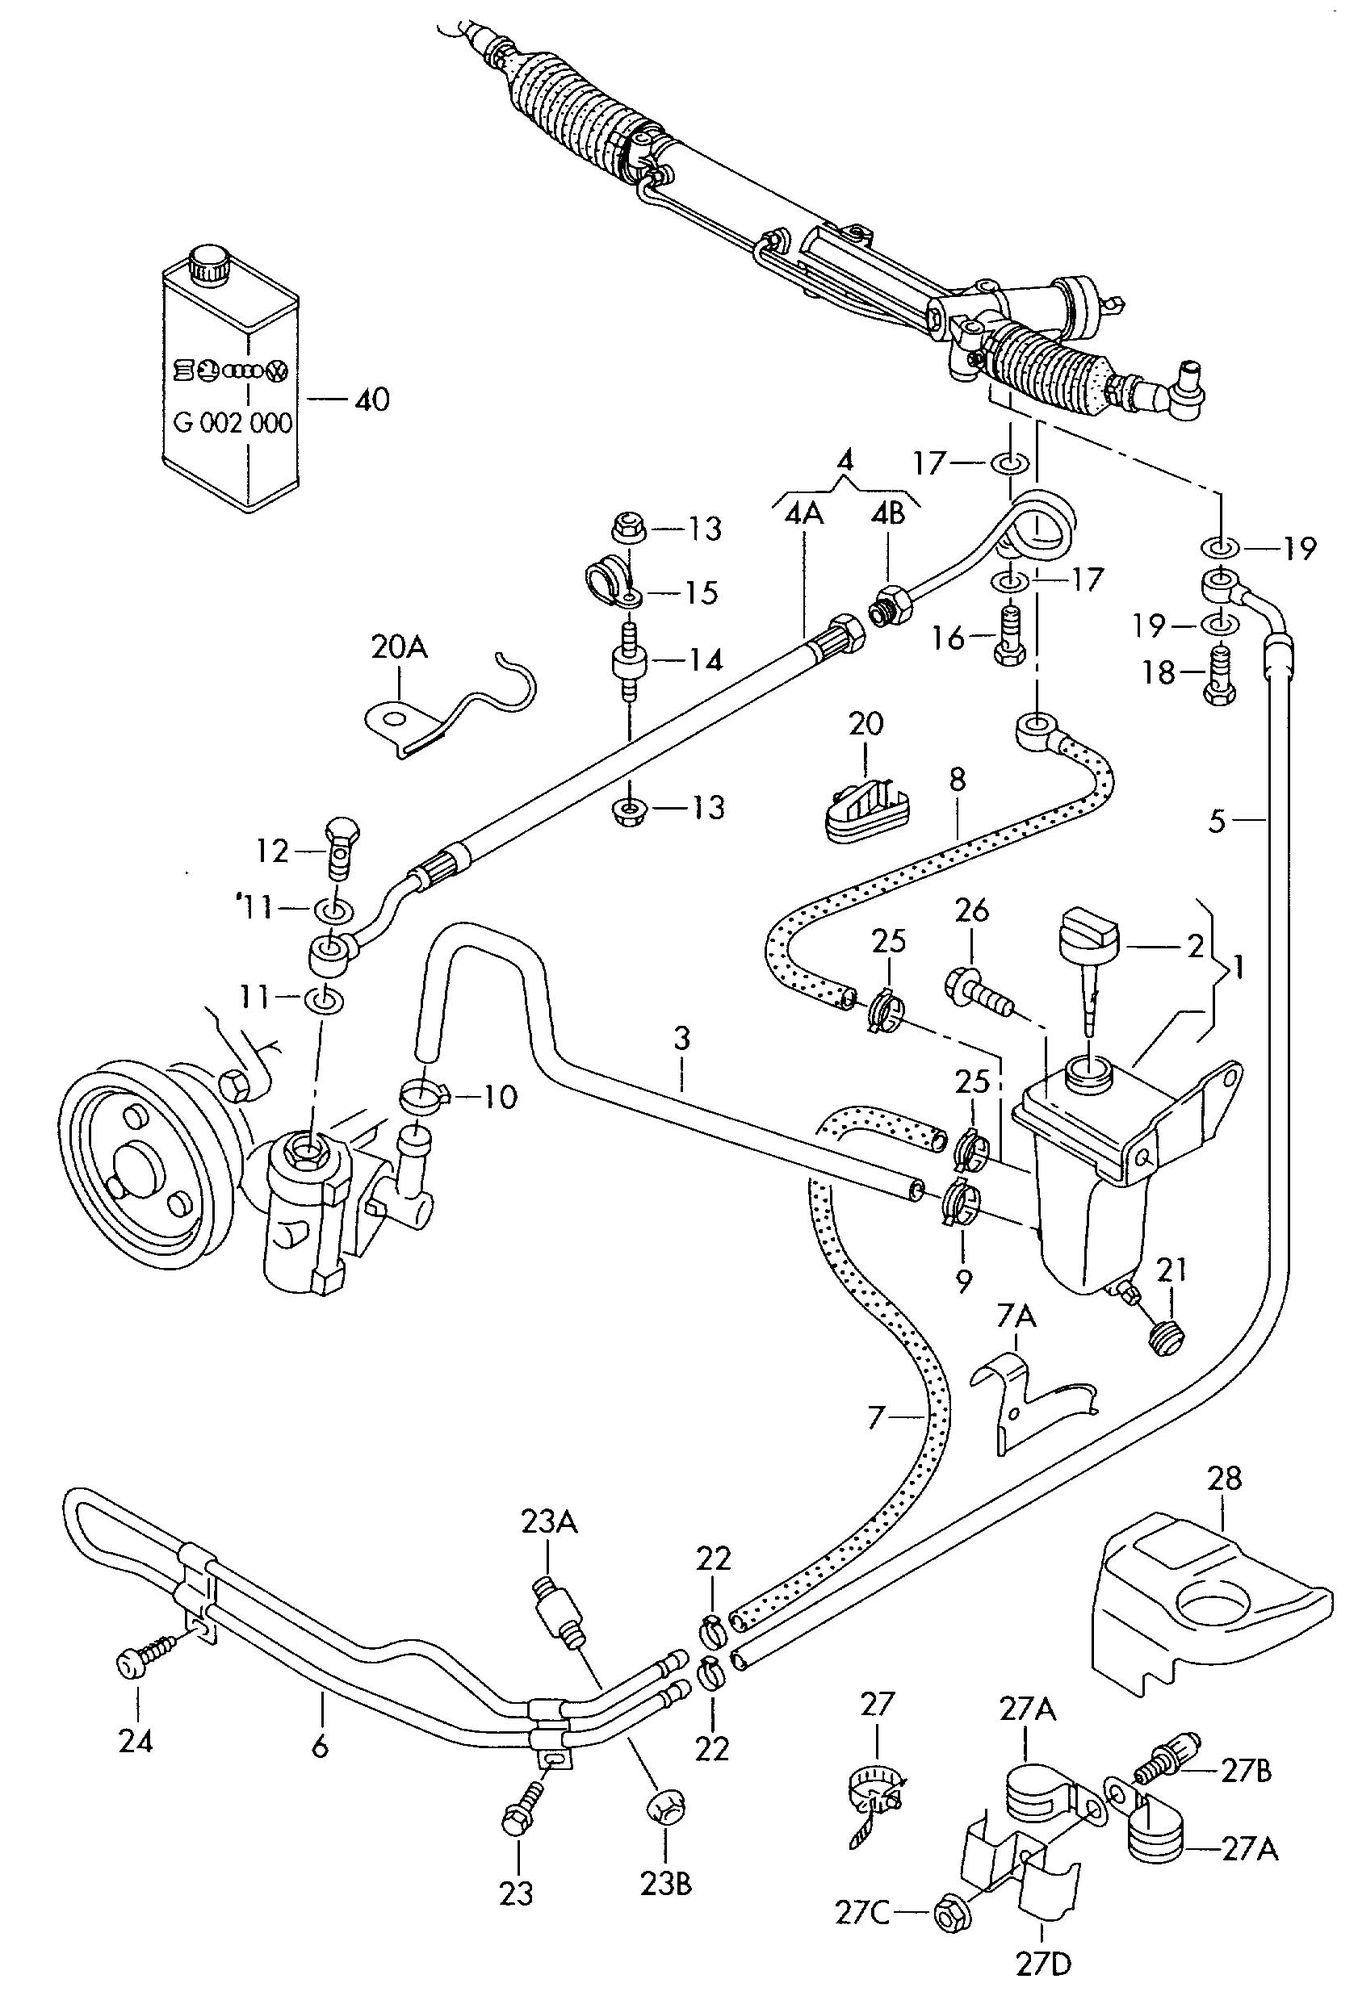 diagrams additionally audi a4 engine diagram in addition audi a4 1 8t